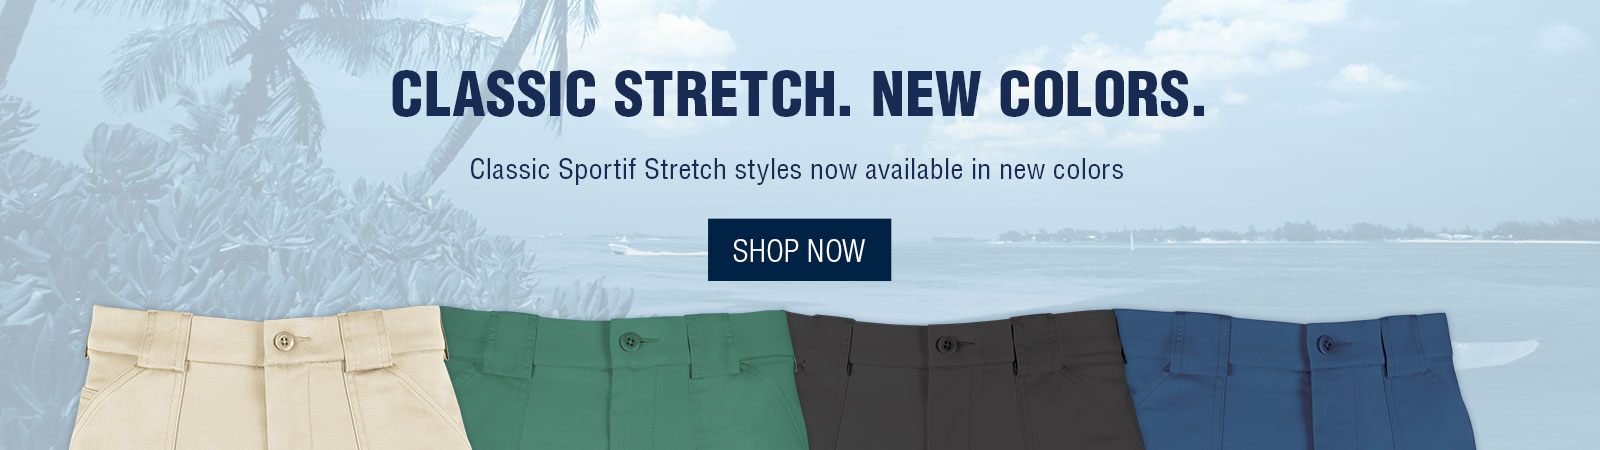 Classic Stretch - New Colors